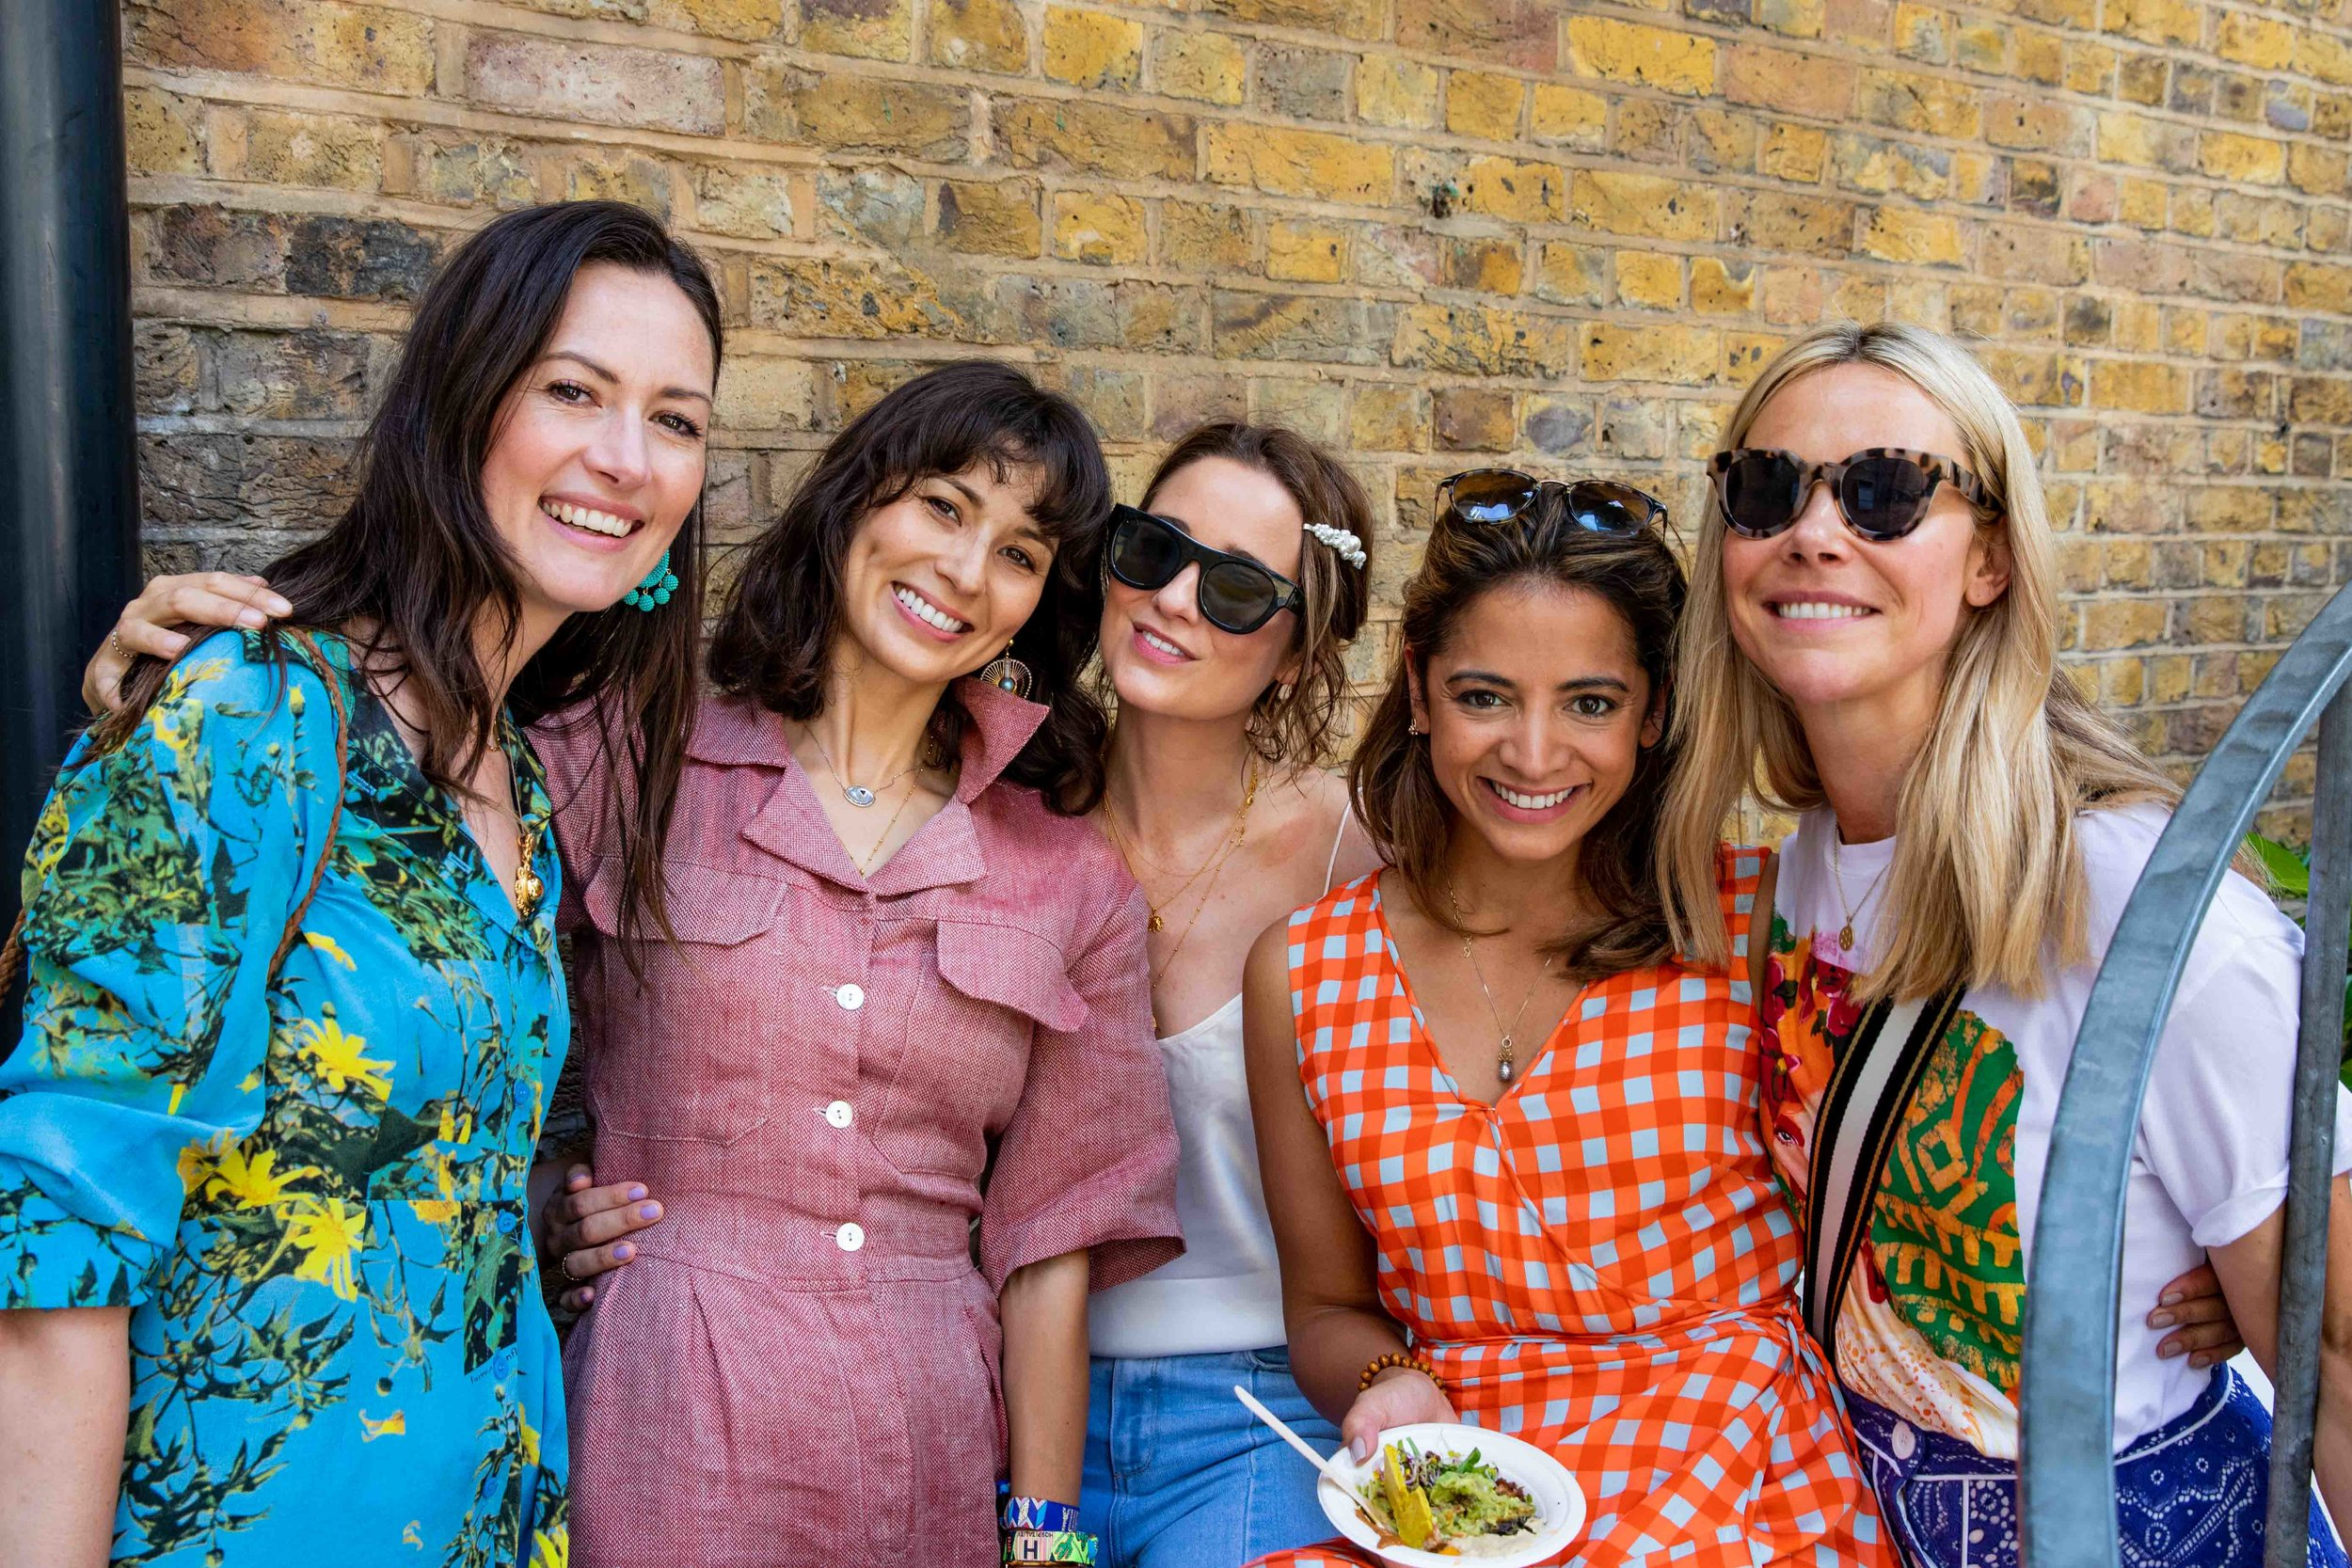 JasmineHemsley_Goop__NickHopperPhotography-1592.jpg